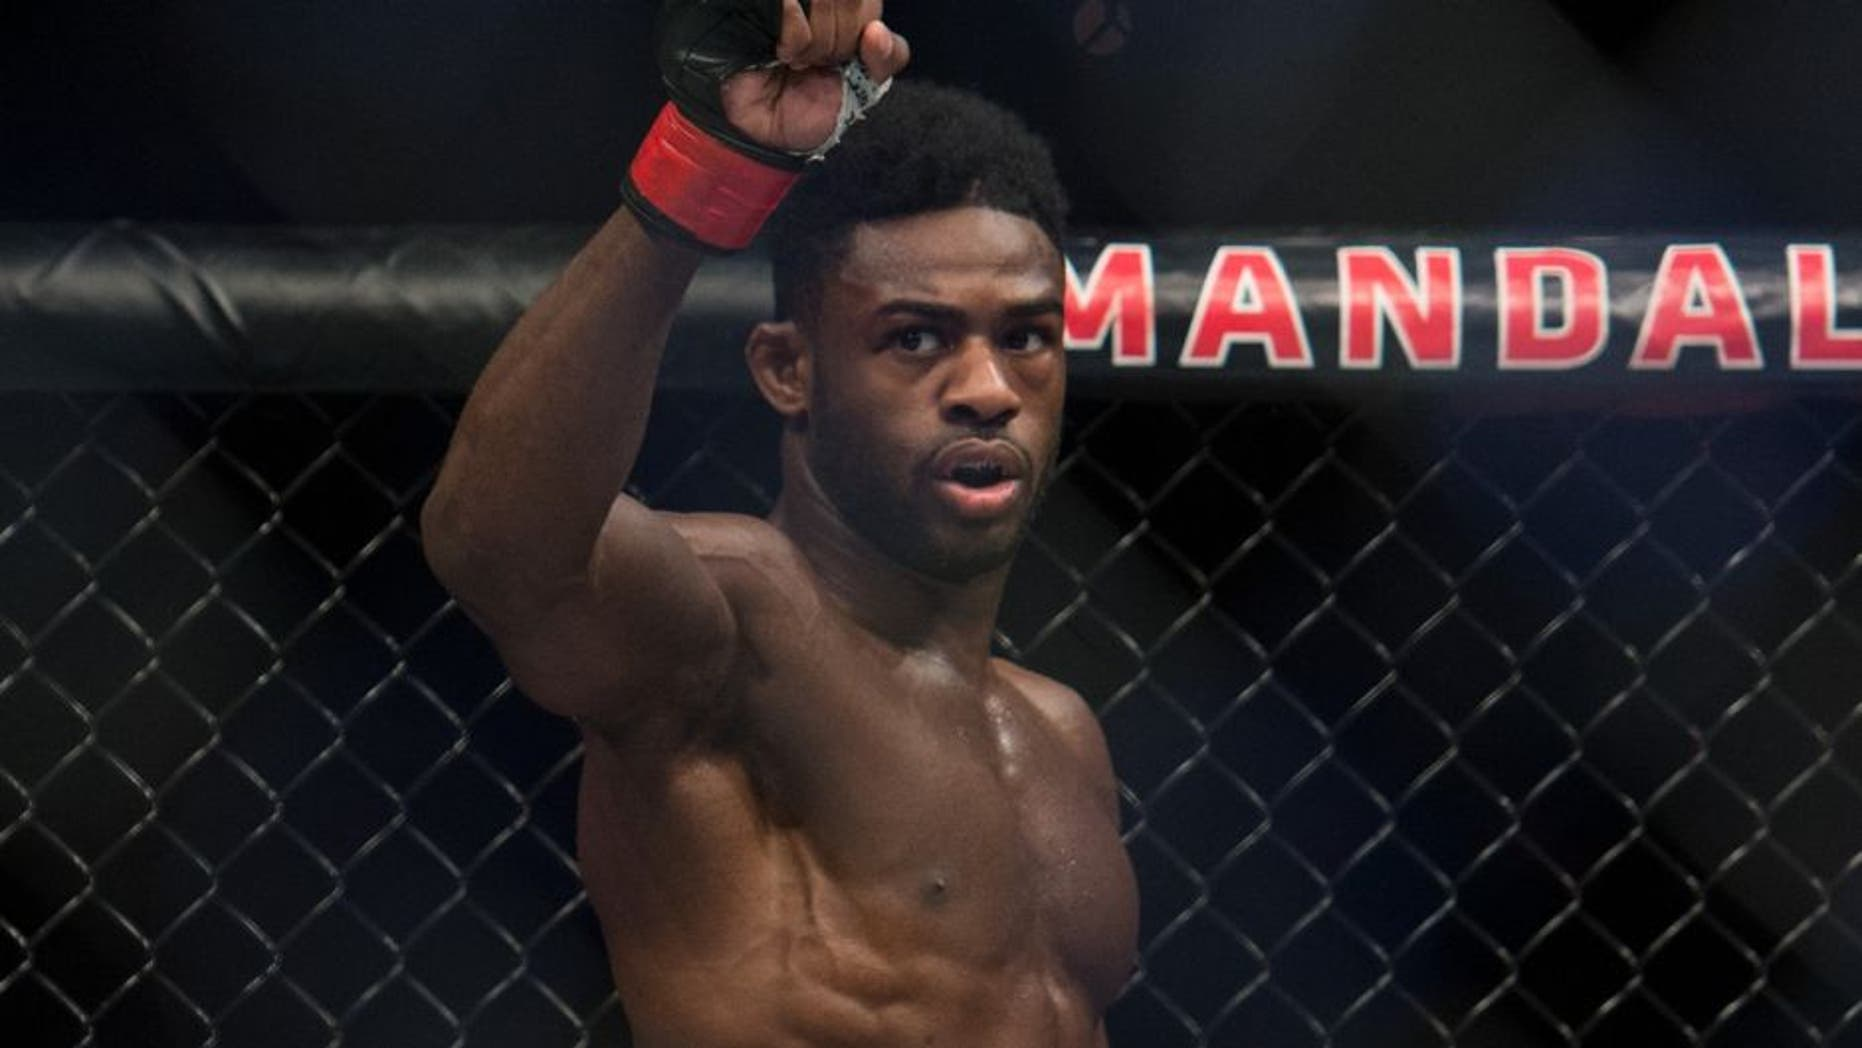 LAS VEGAS, NV - MAY 29: Aljamain Sterling prepares for the third round to begin before facing Bryan Caraway in their bantamweight bout during the UFC Fight Night event inside the Mandalay Bay Events Center on May 29, 2016 in Las Vegas, Nevada. (Photo by Brandon Magnus/Zuffa LLC/Zuffa LLC via Getty Images)